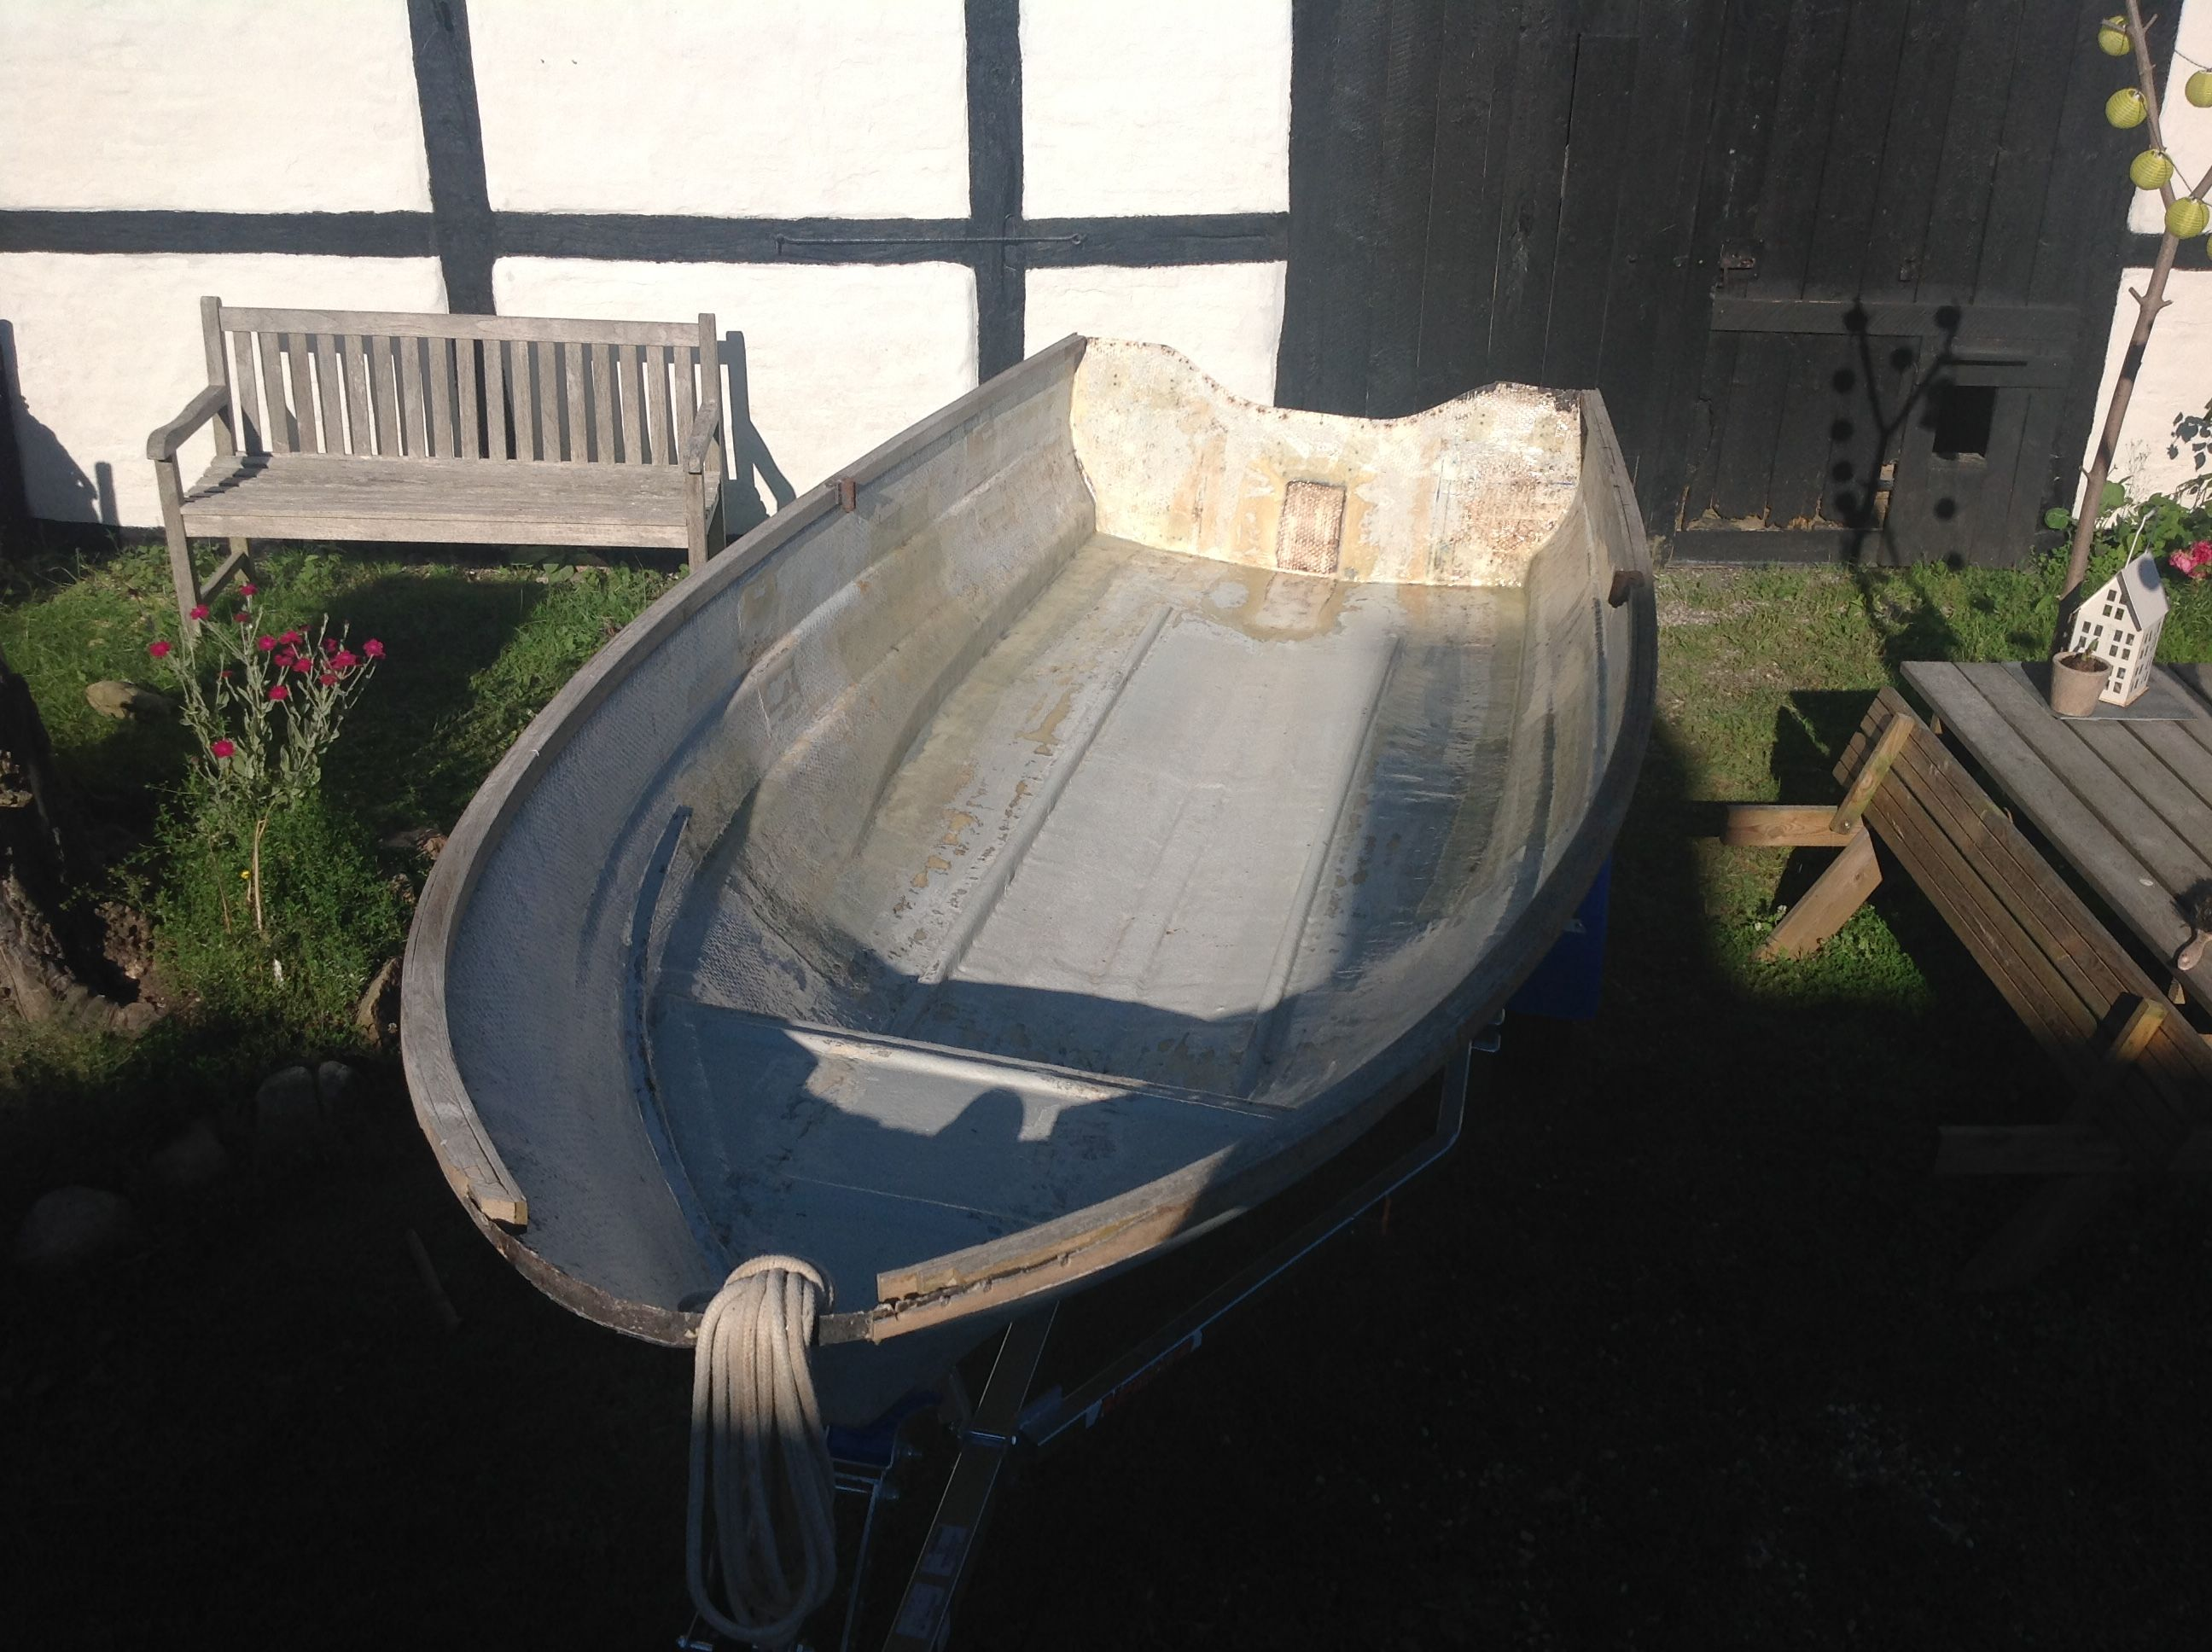 Part 11 / The old fiberglass hull can float again! All holes and cracks are